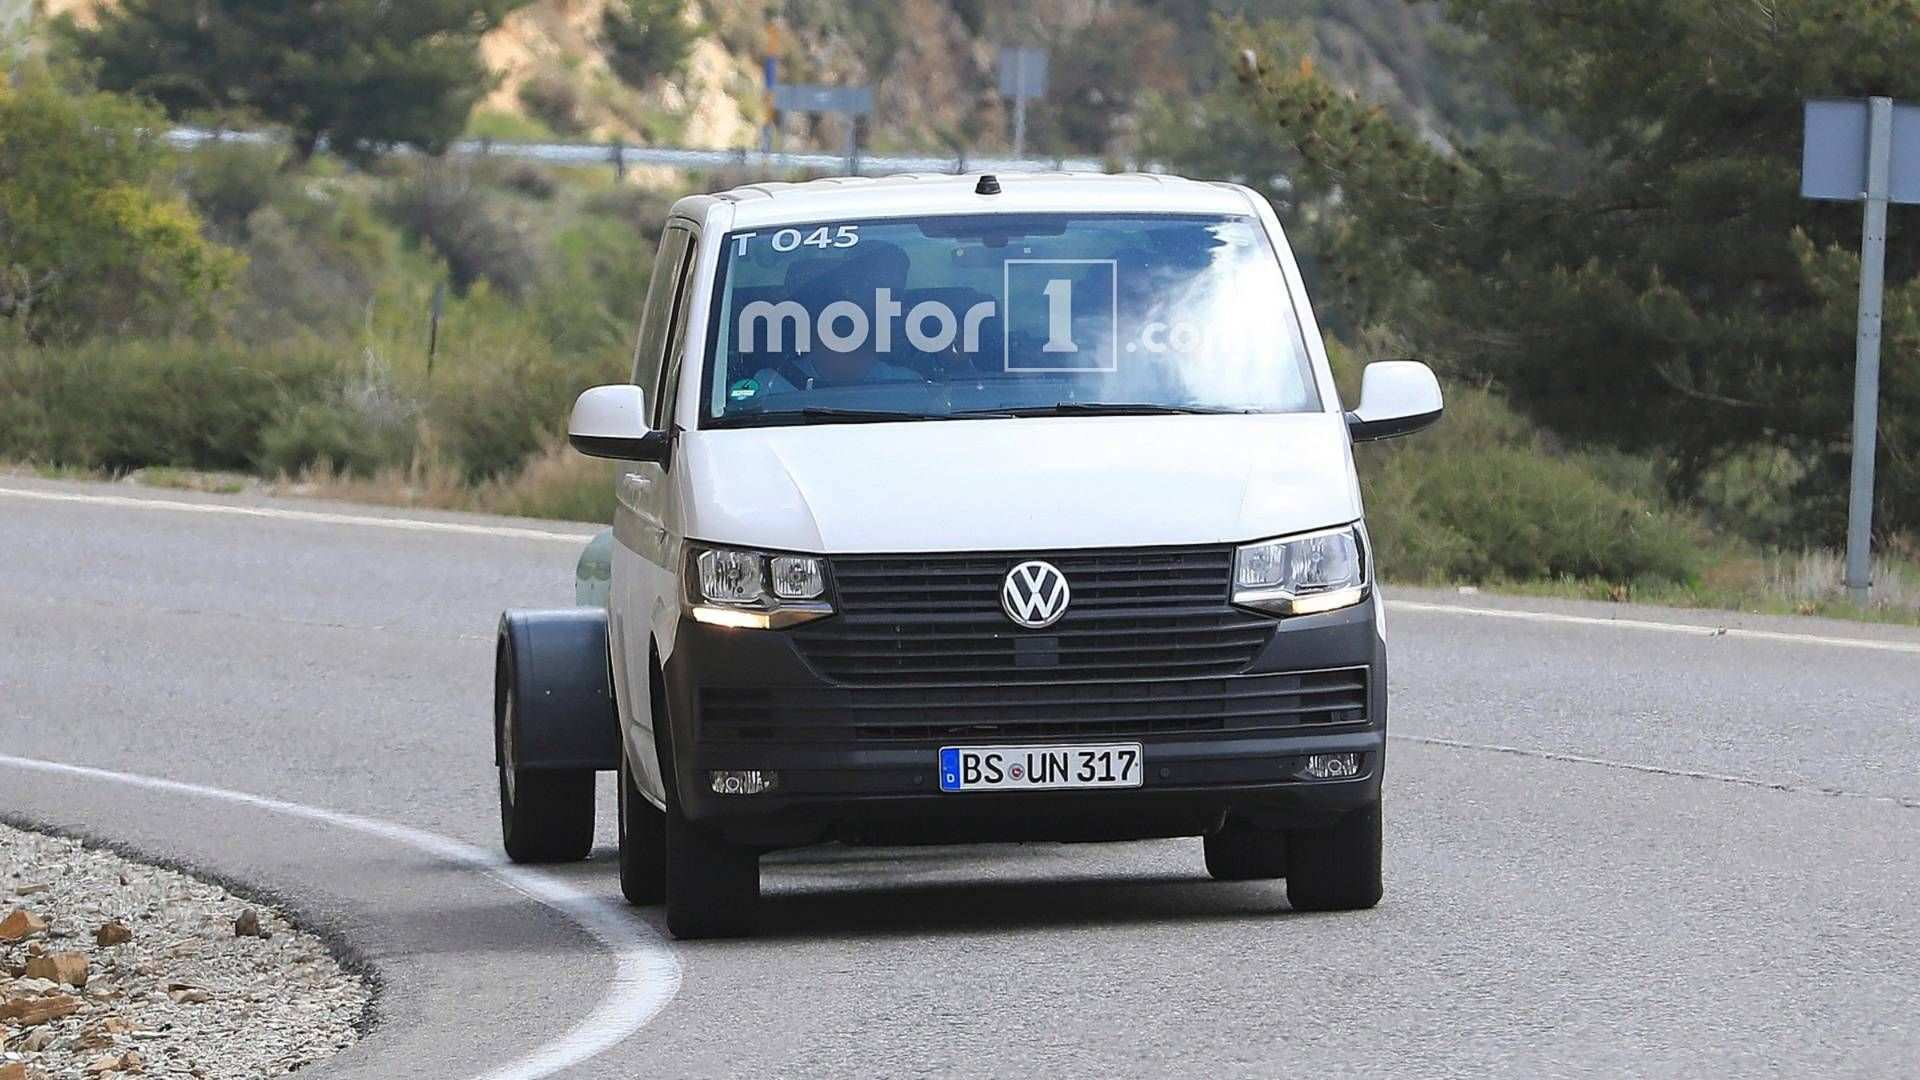 47 New Best Honda Kombi 2019 First Drive Photos with Best Honda Kombi 2019 First Drive